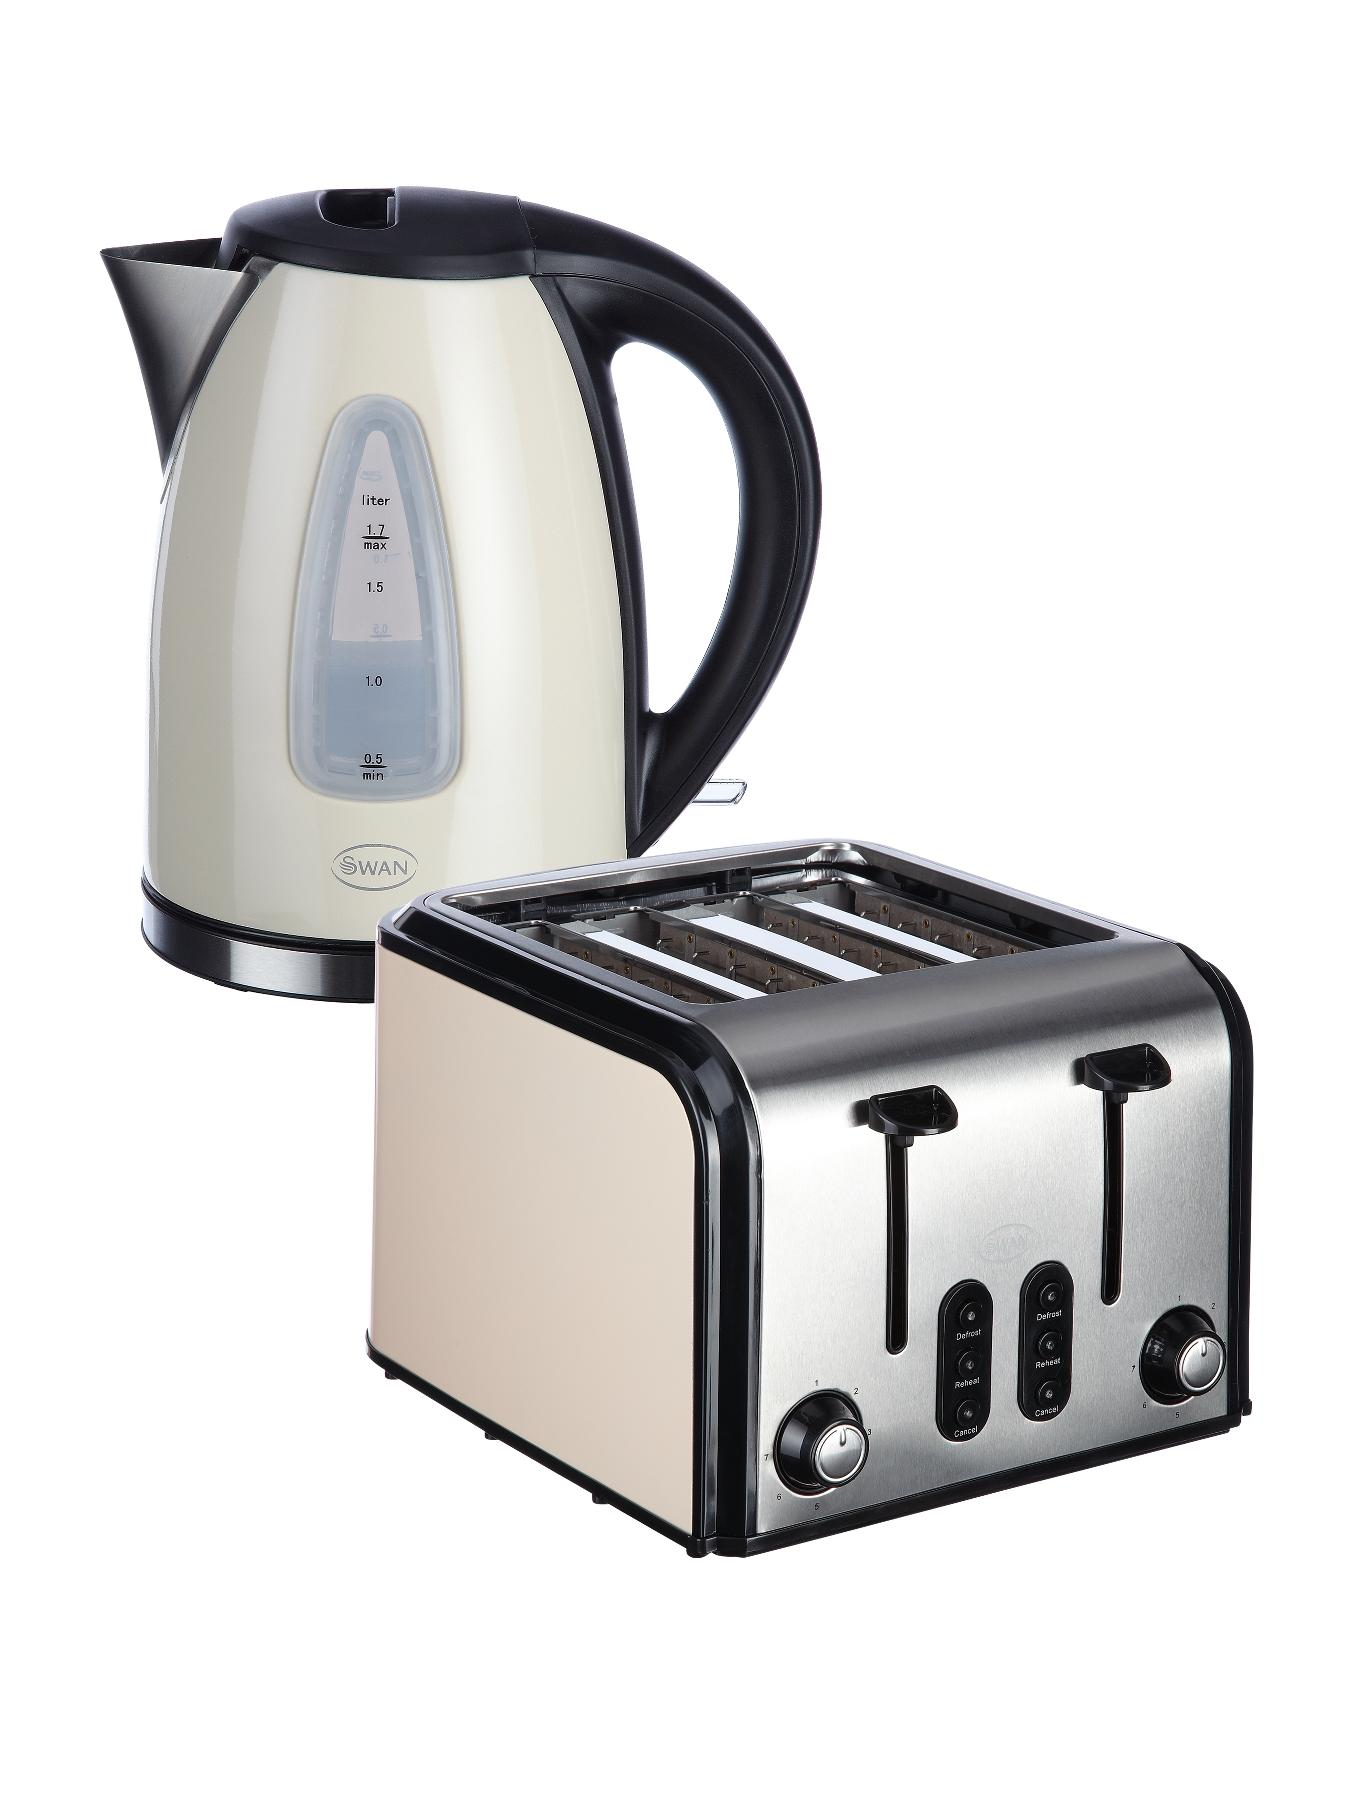 SK13110C/ST70100C Fastboil Kettle and 4 Slice Toaster Pack - Cream